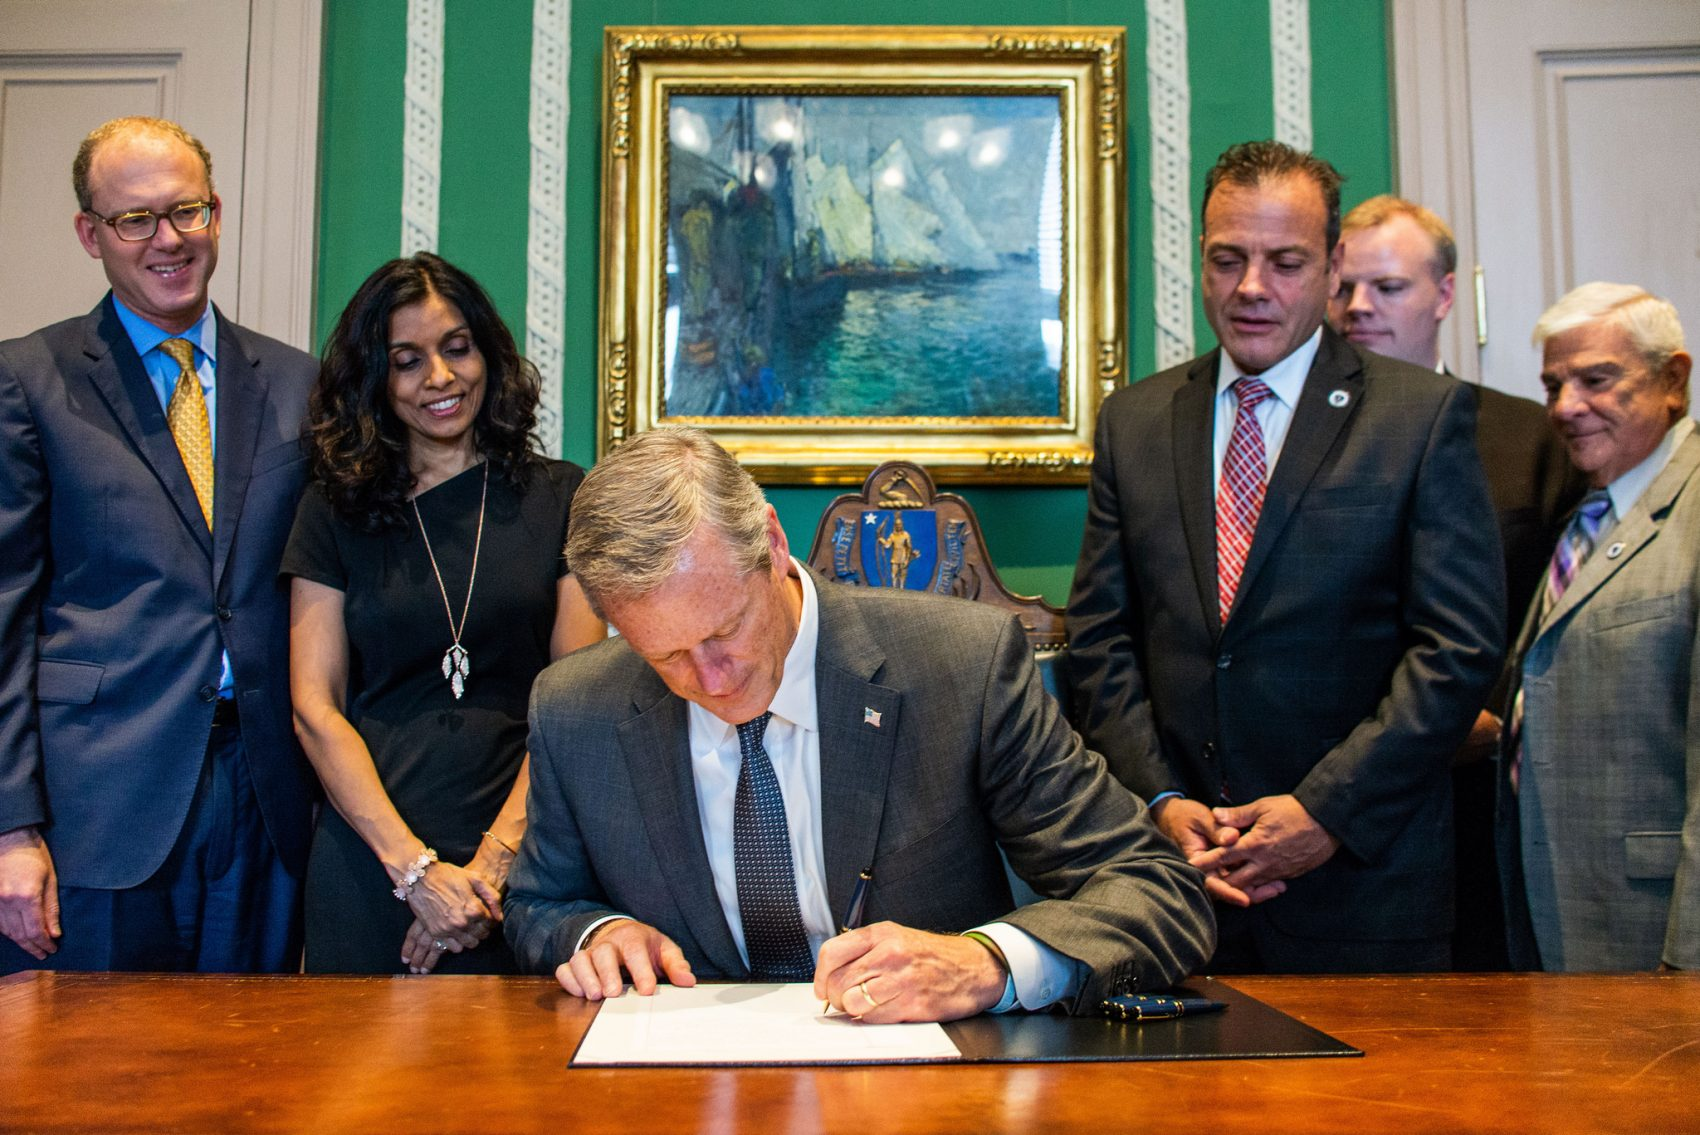 Gov. Charlie Baker signs into law a statewide measure that raises the legal age to purchase tobacco products from 18 to 21. (Courtesy Josephine Pettigrew/Office of the Governor via flickr)